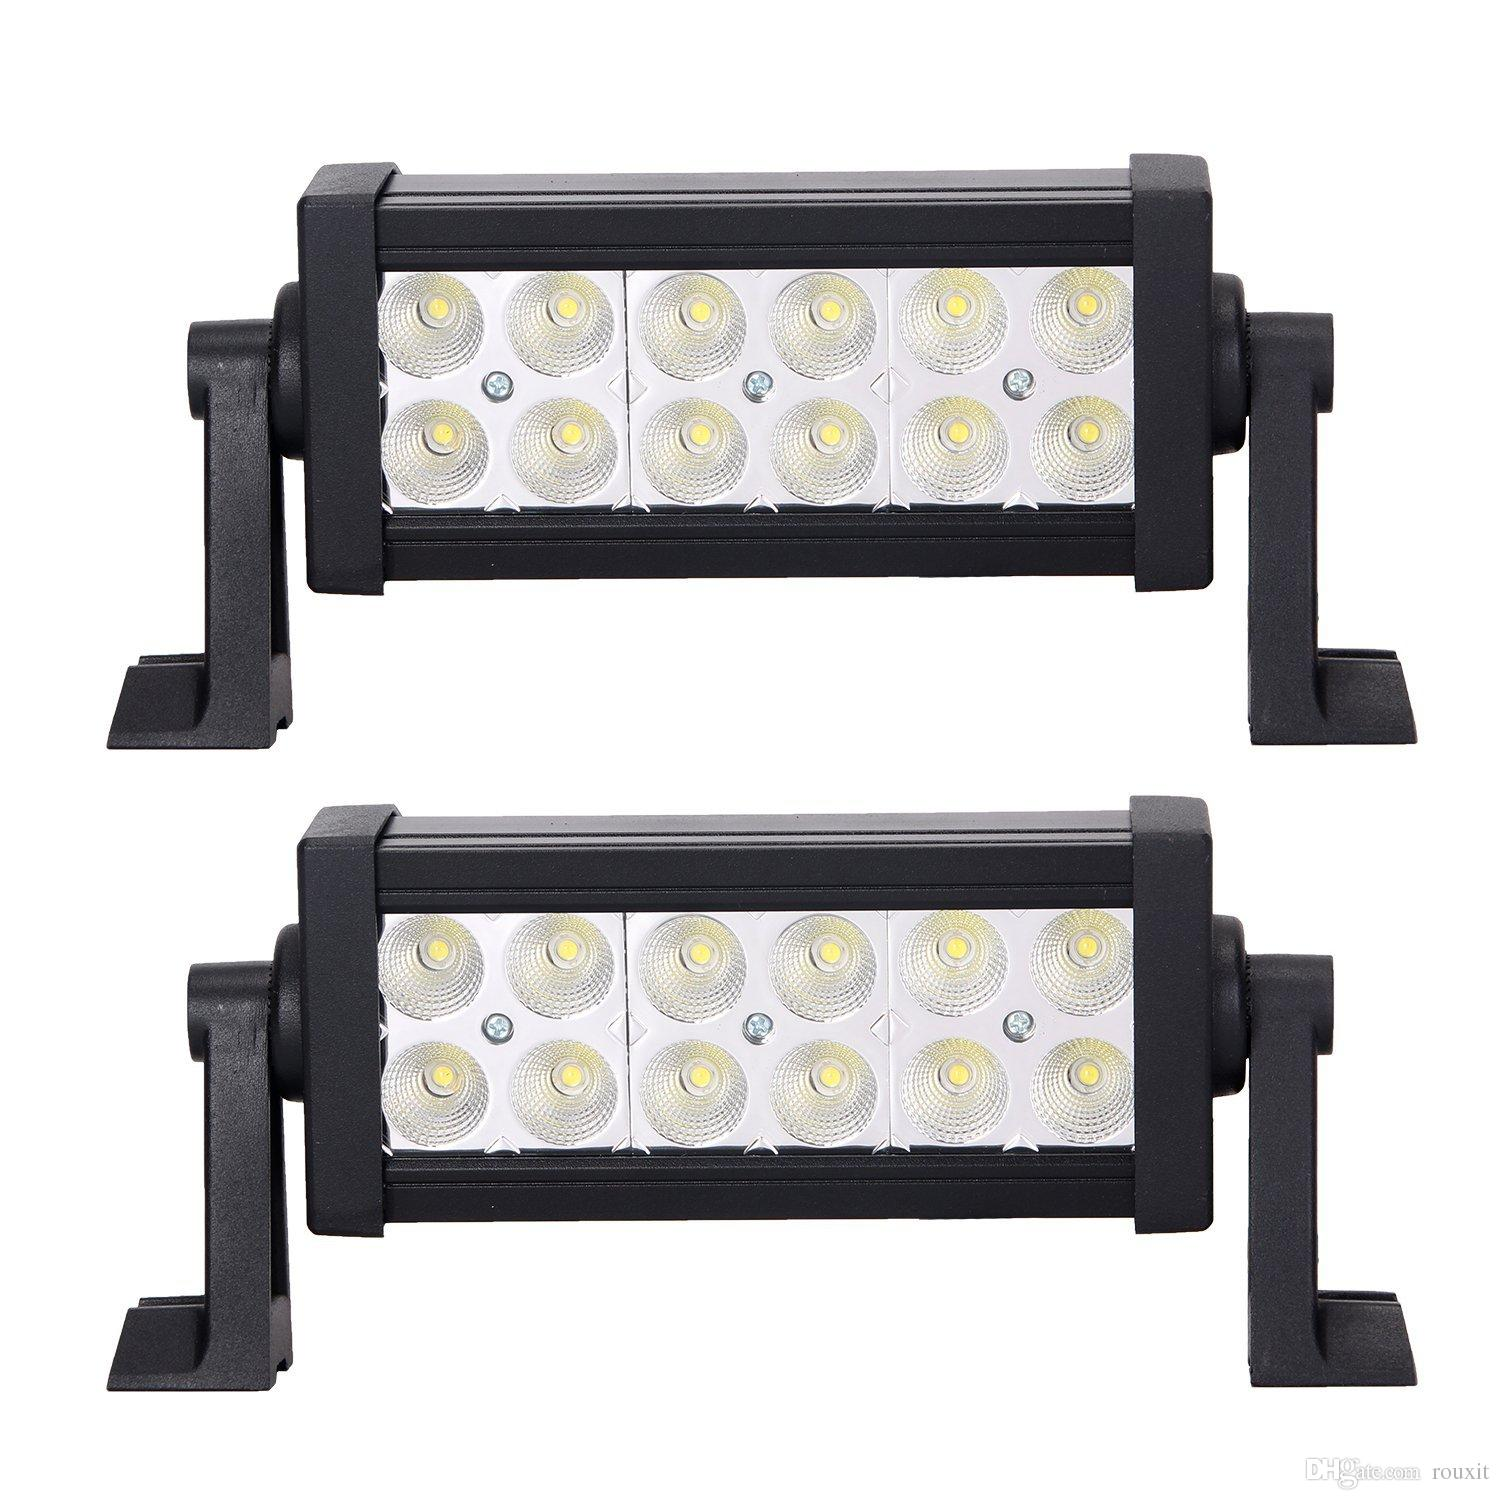 2X 8 Inch 36W OffRoad LED Work Light Bar Flood Spot Beam for Truck 4x4 4WD SUV ATV Automobile Motorcycle 12V Car Styling